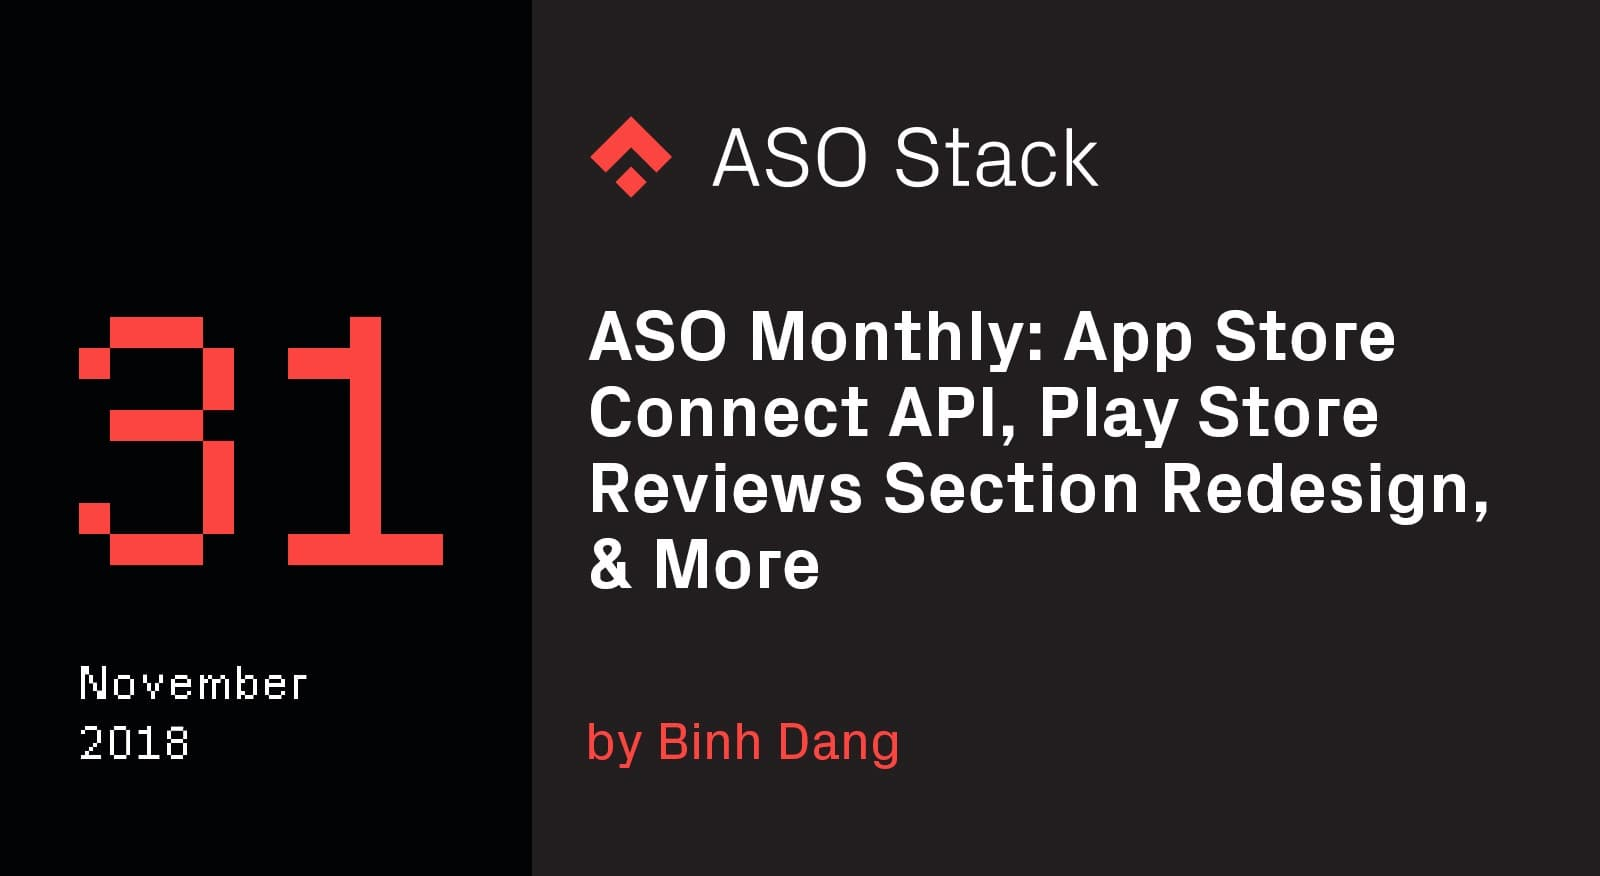 ASO Monthly #31 November 2018- App Store Connect API, Play Store Reviews Section Redesign & More